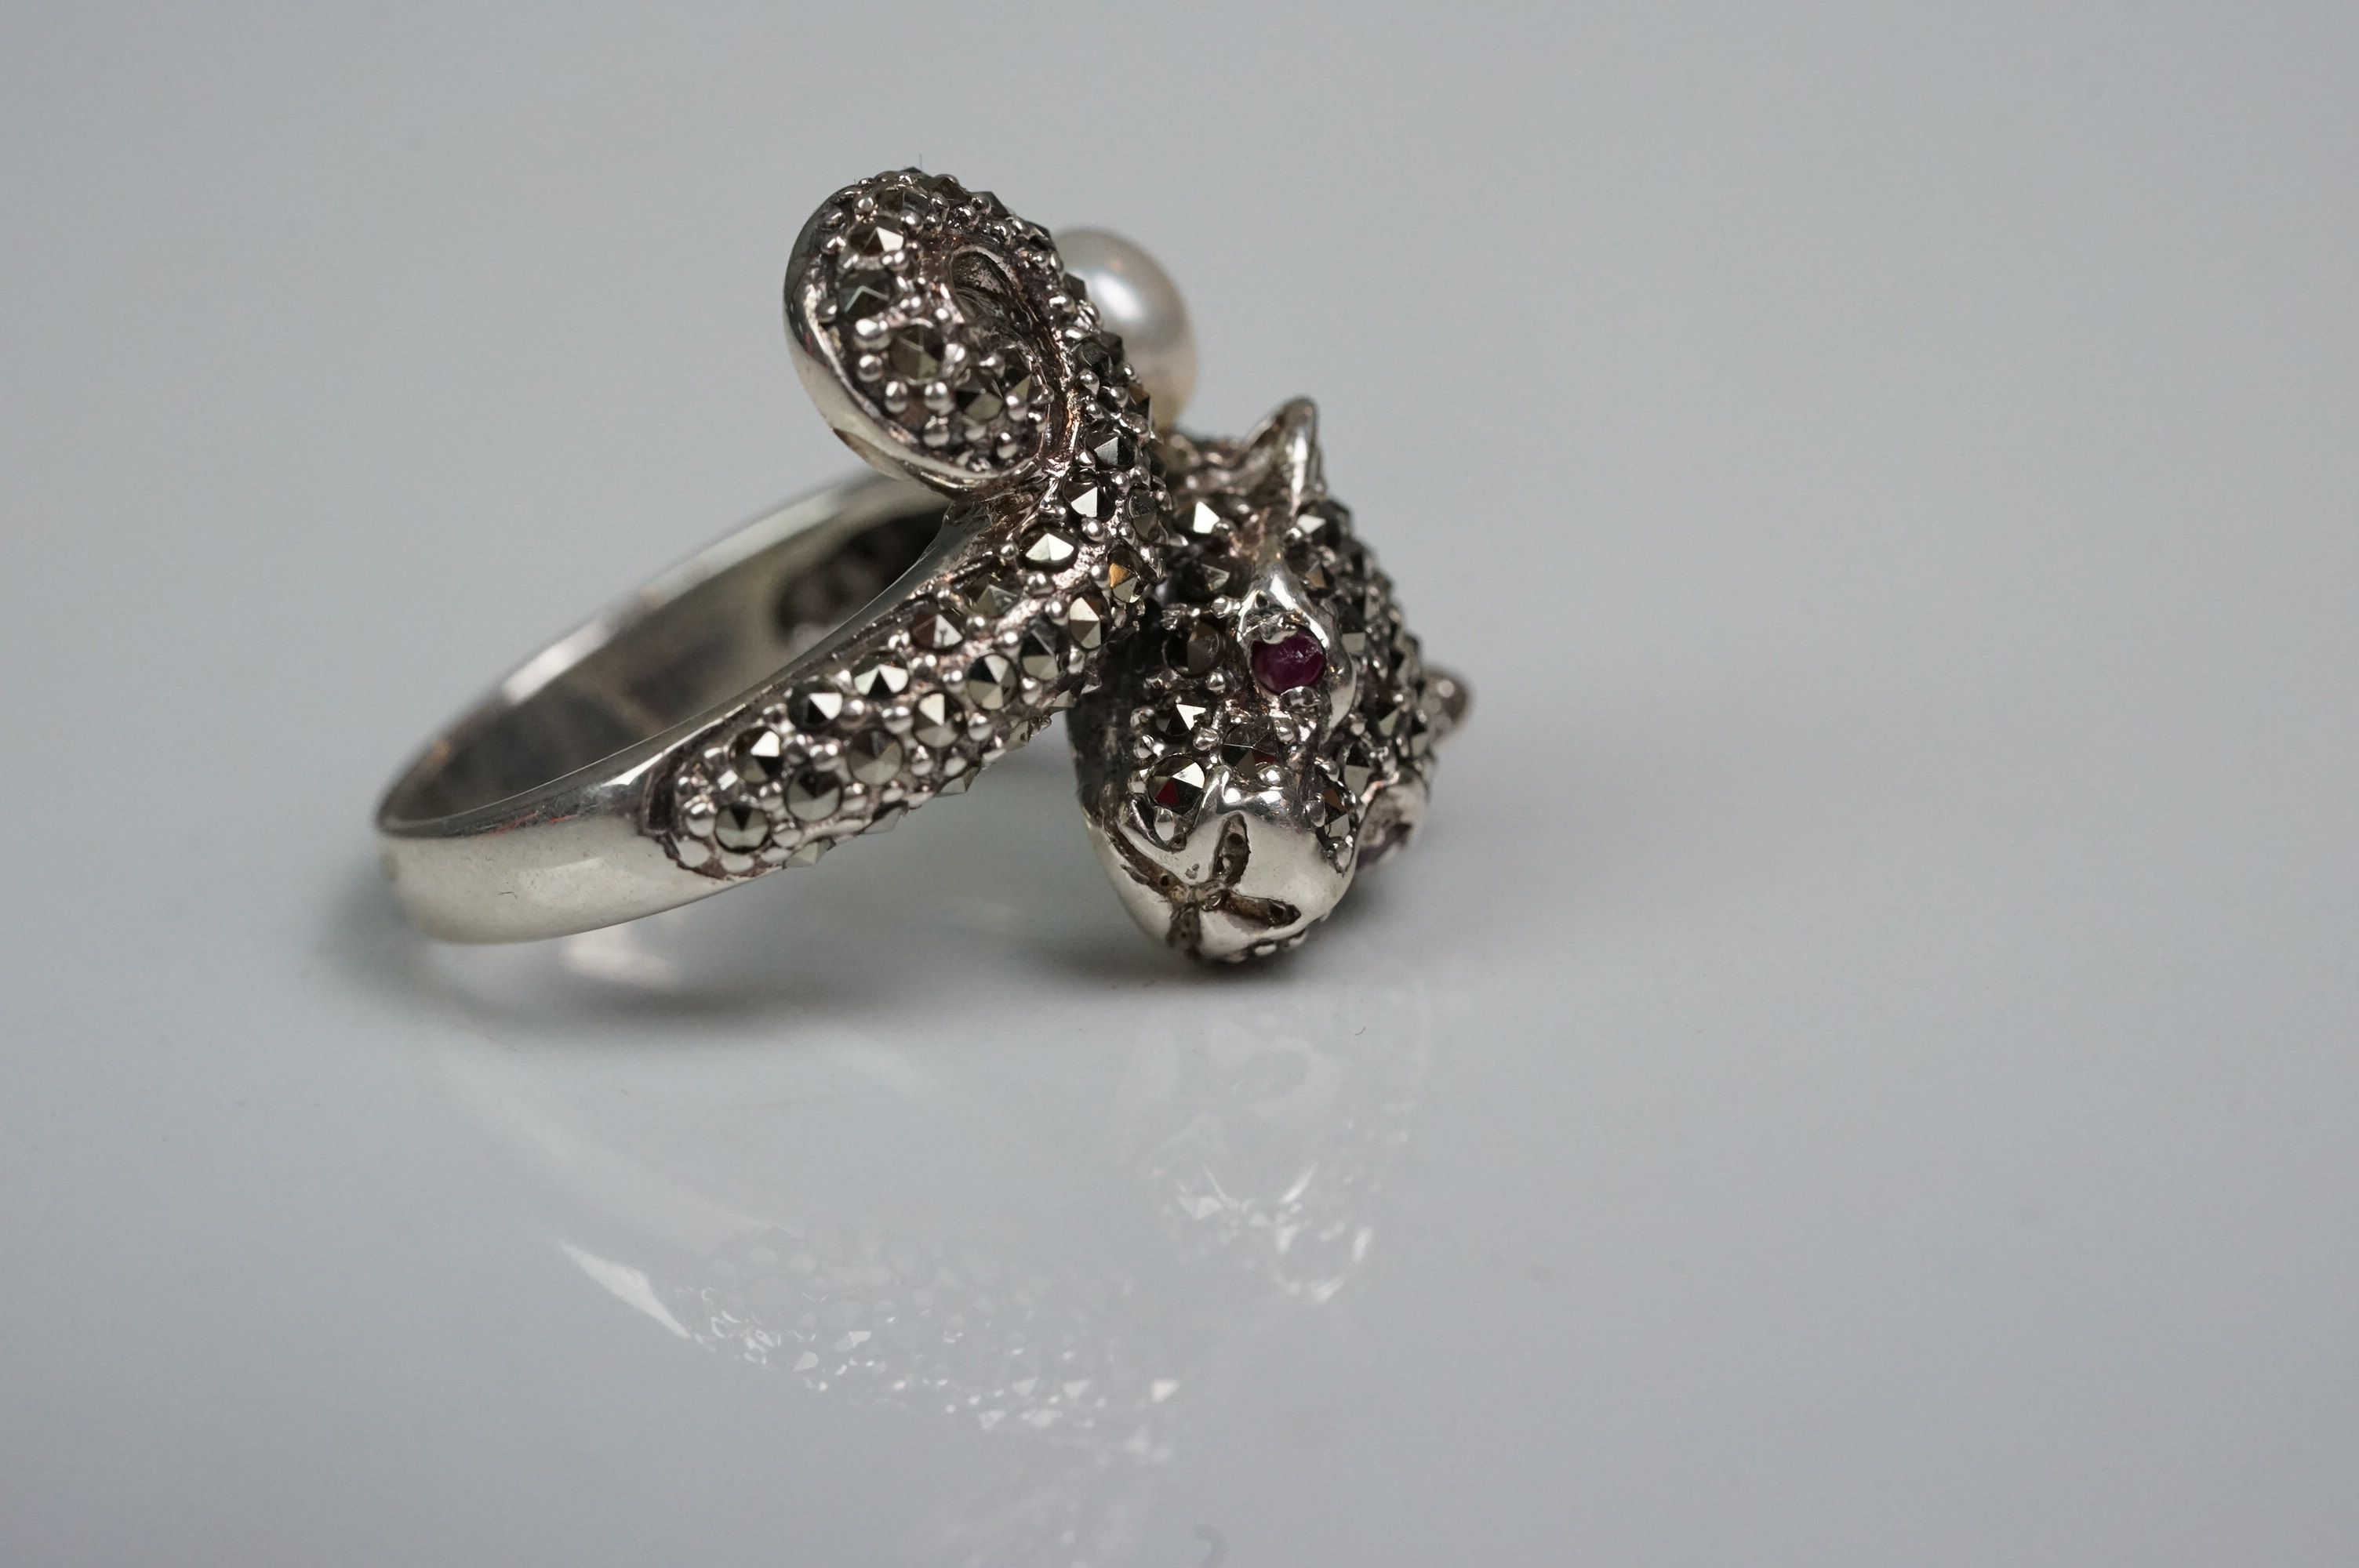 Silver panther ring, set with marcasites and ruby eyes - Image 5 of 6